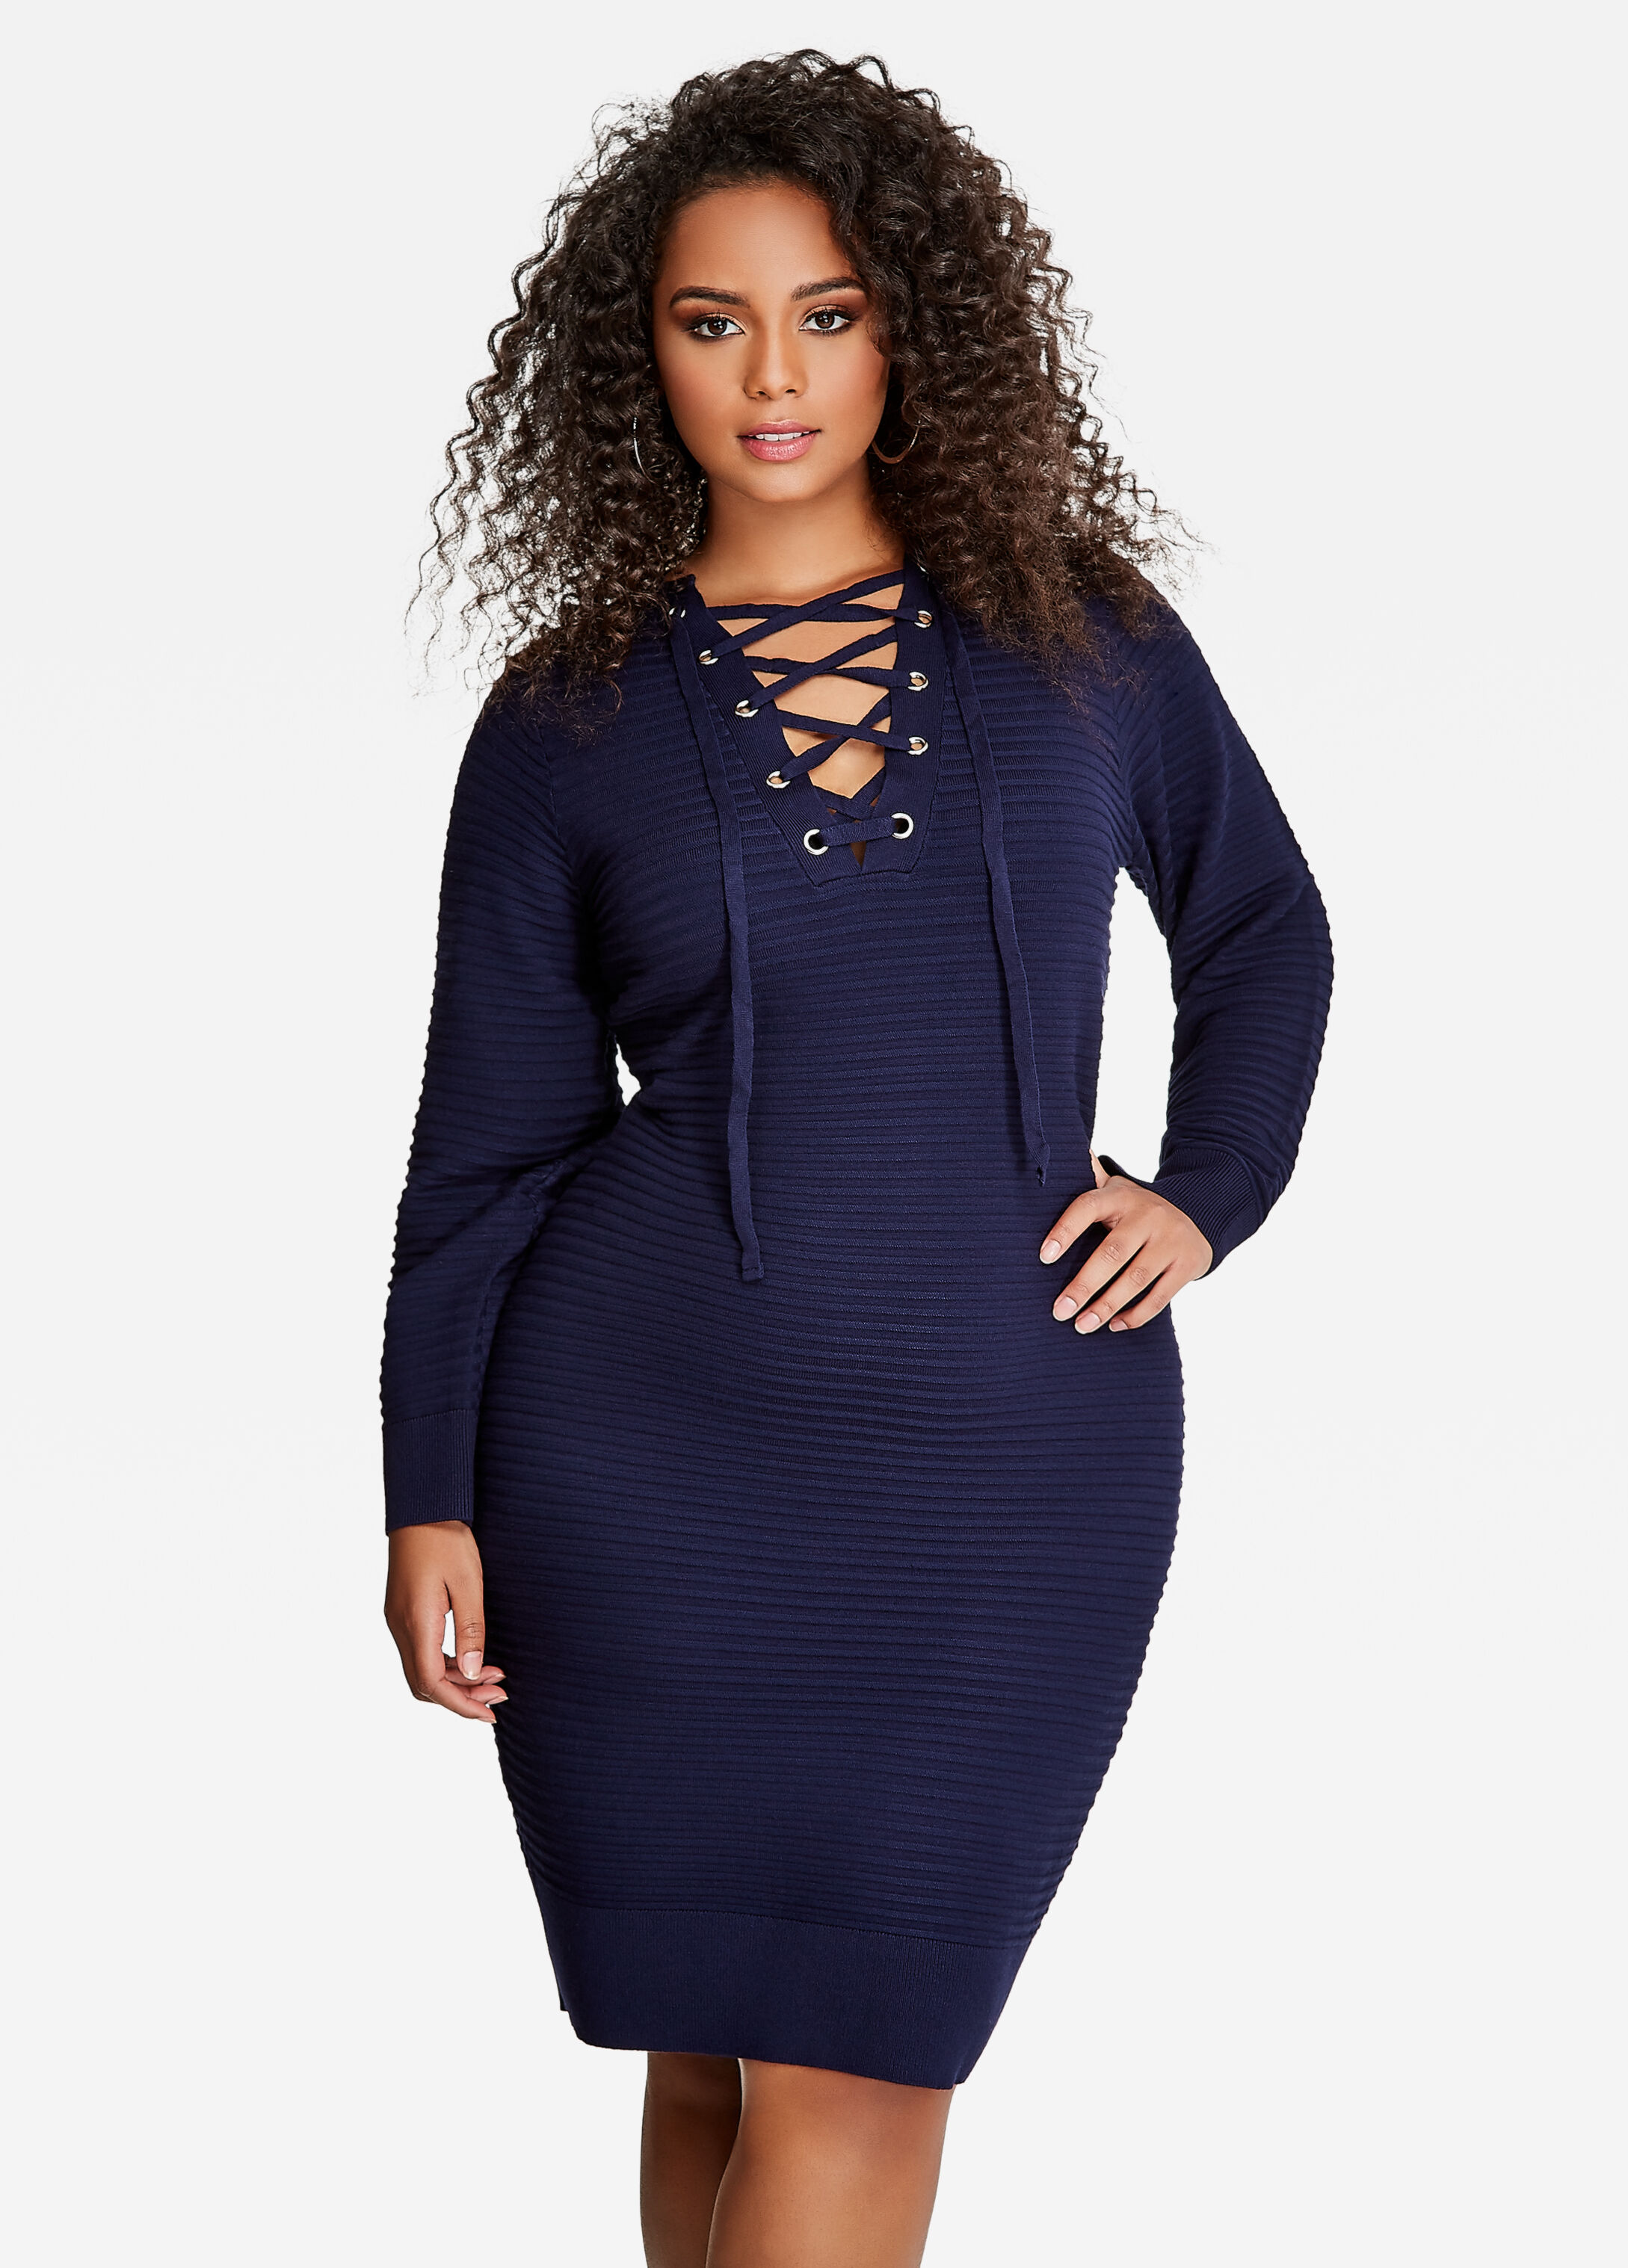 Cute sweater dresses plus size